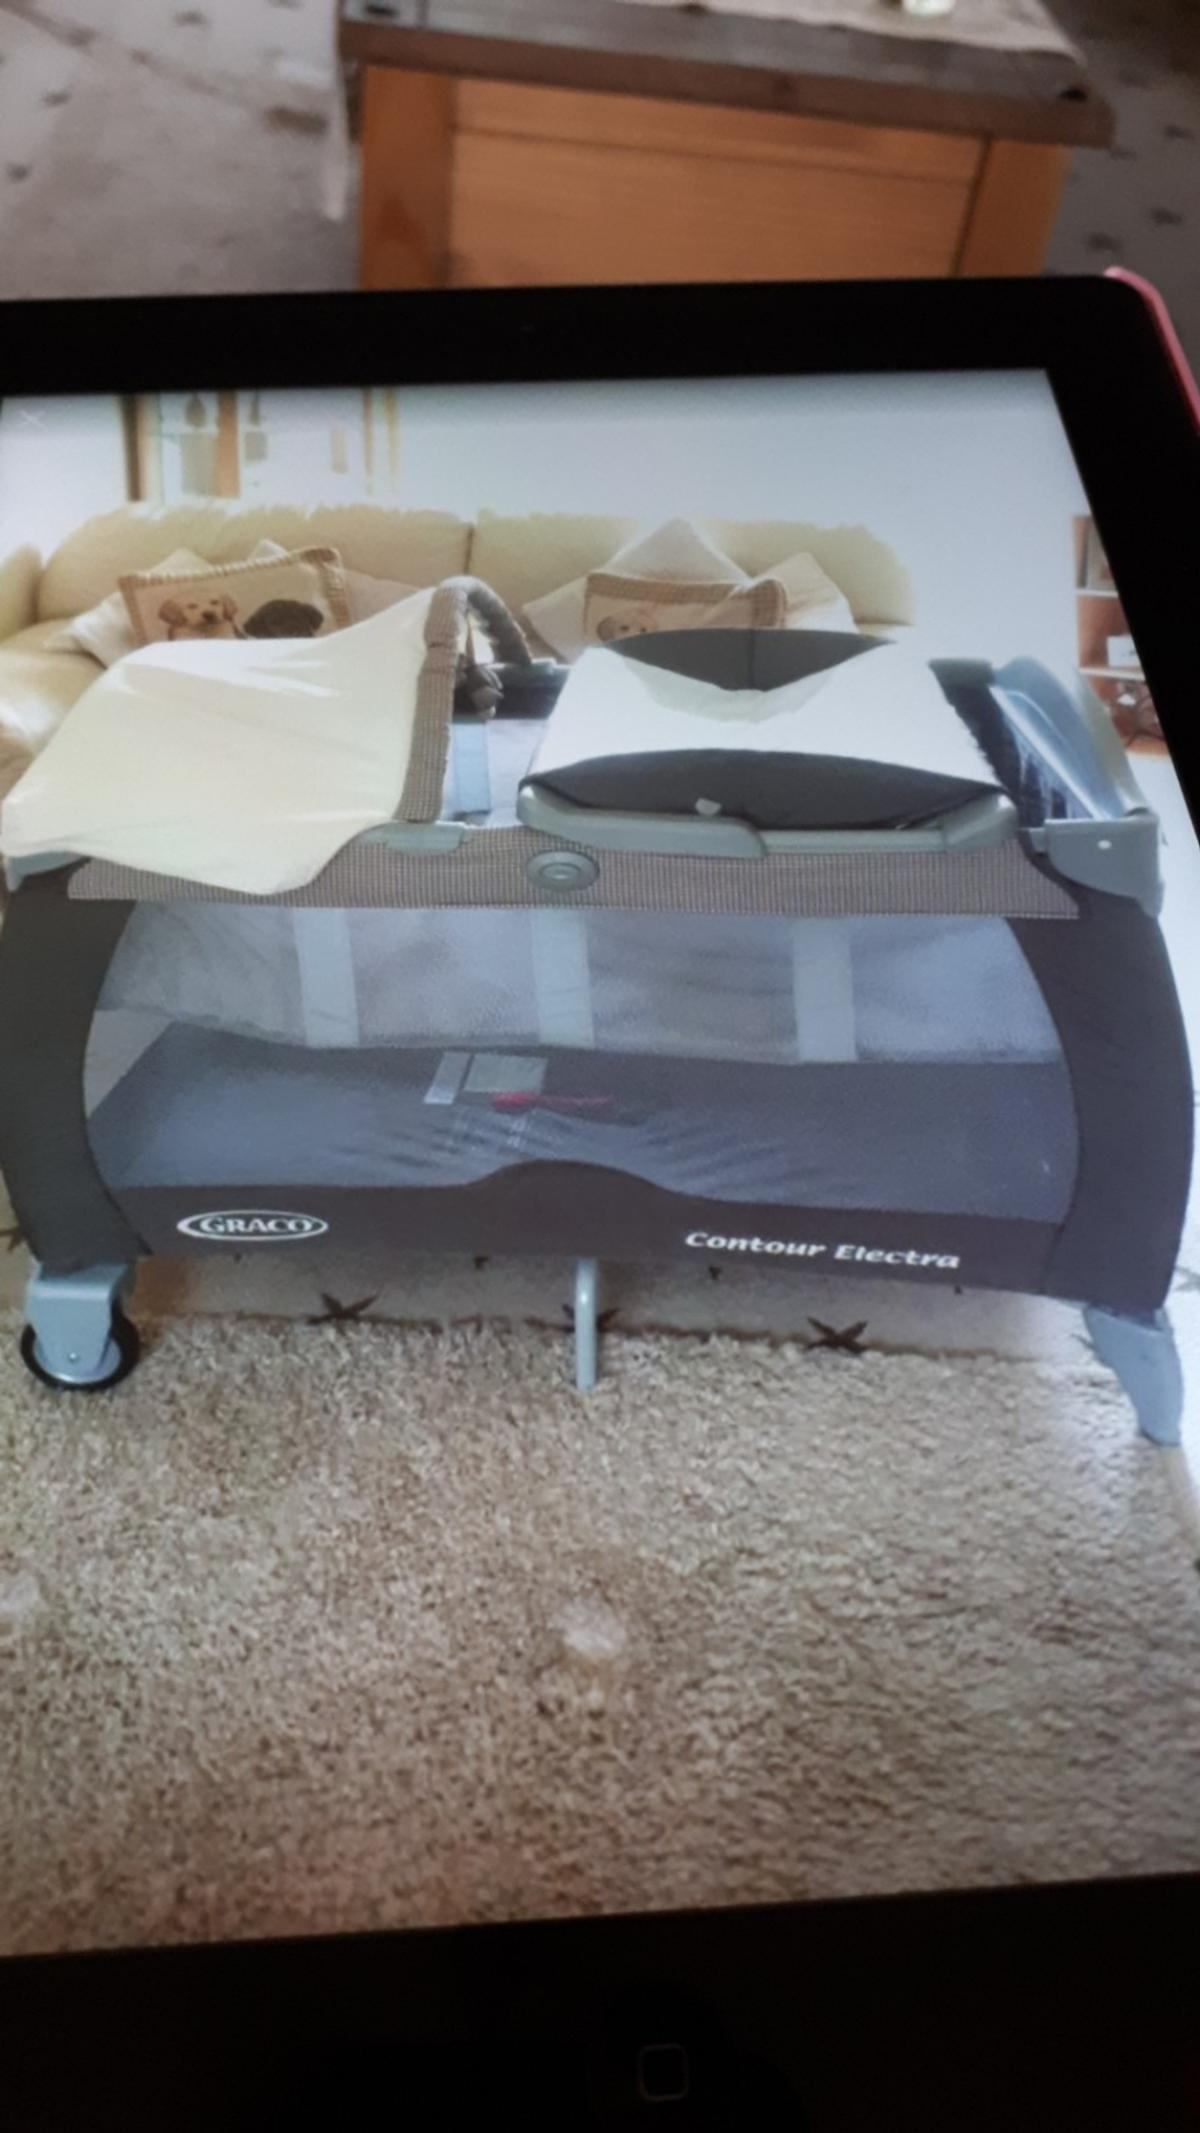 graco travel cot/playpen in WV5 Staffordshire for £40 00 for